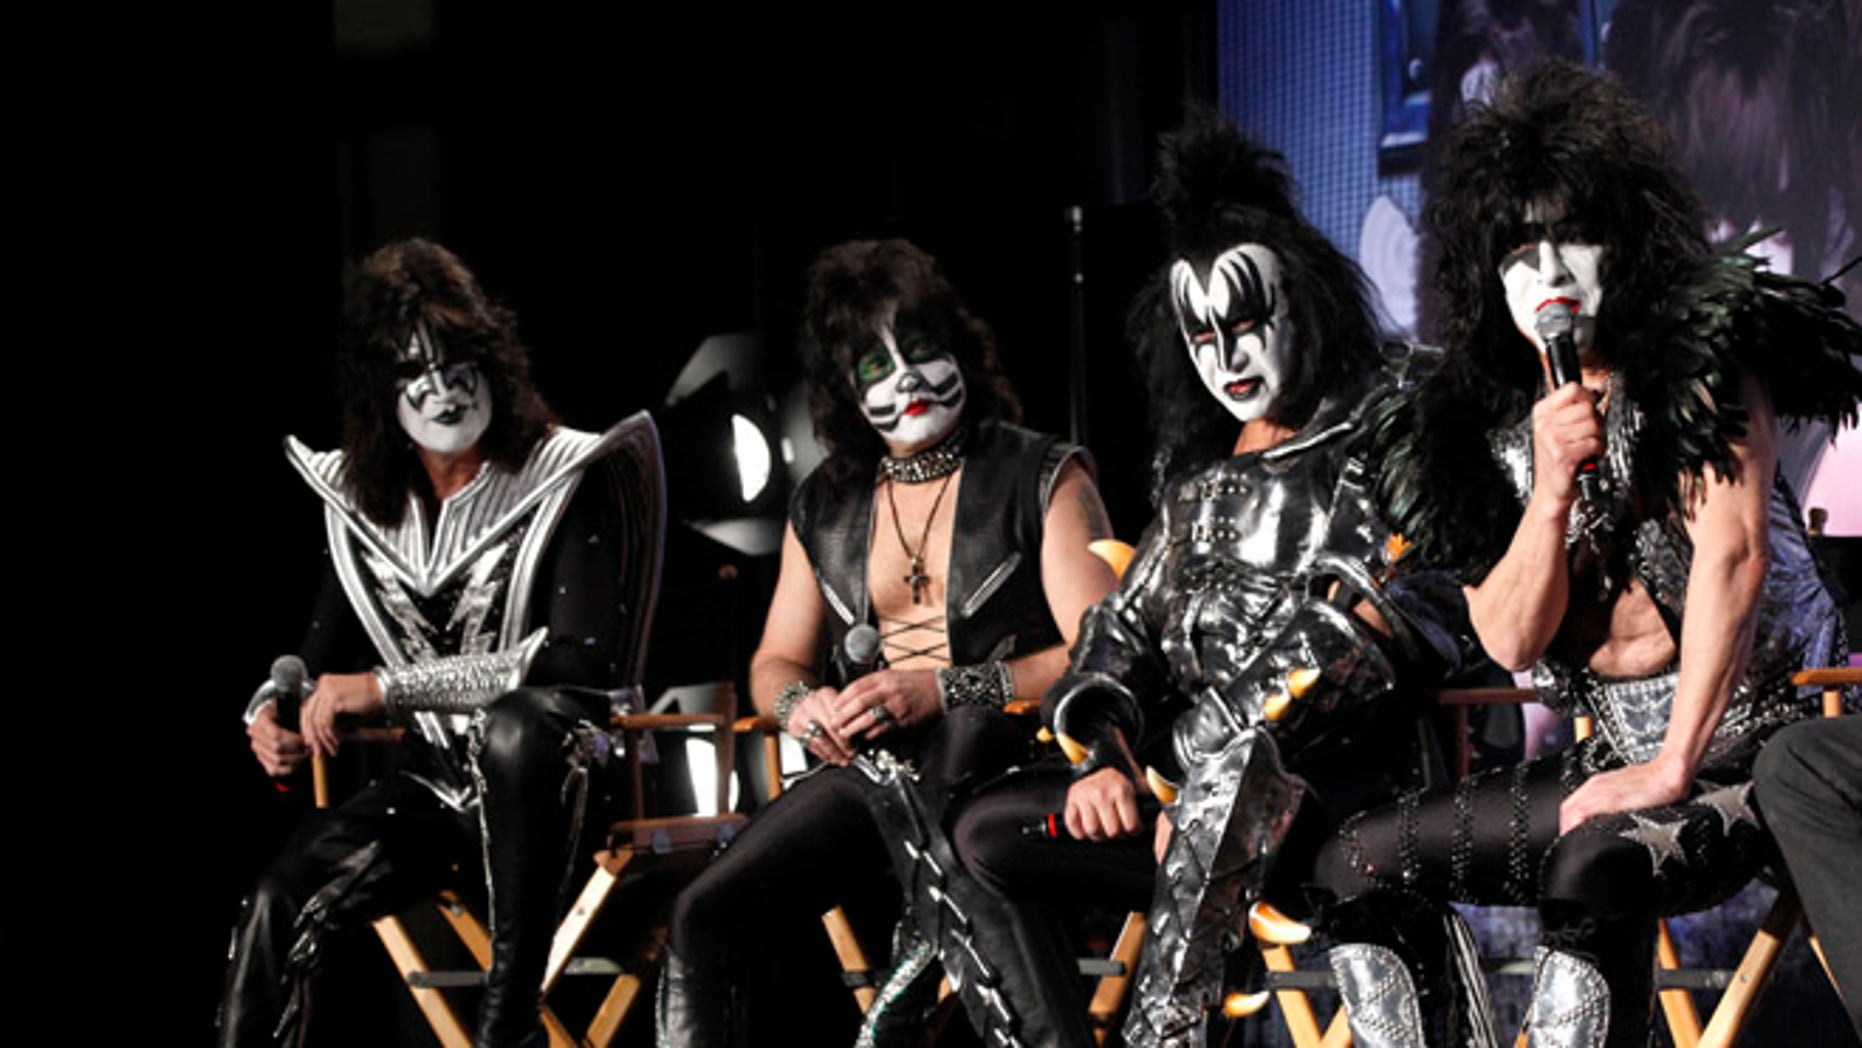 """March 20, 2012: Rock band Kiss (from L-R) Tommy Thayer, Eric Singer, Gene Simmons and Paul Stanley attend a news conference to announce the """"Kiss, Motley Crue: The Tour"""" in Hollywood, California."""